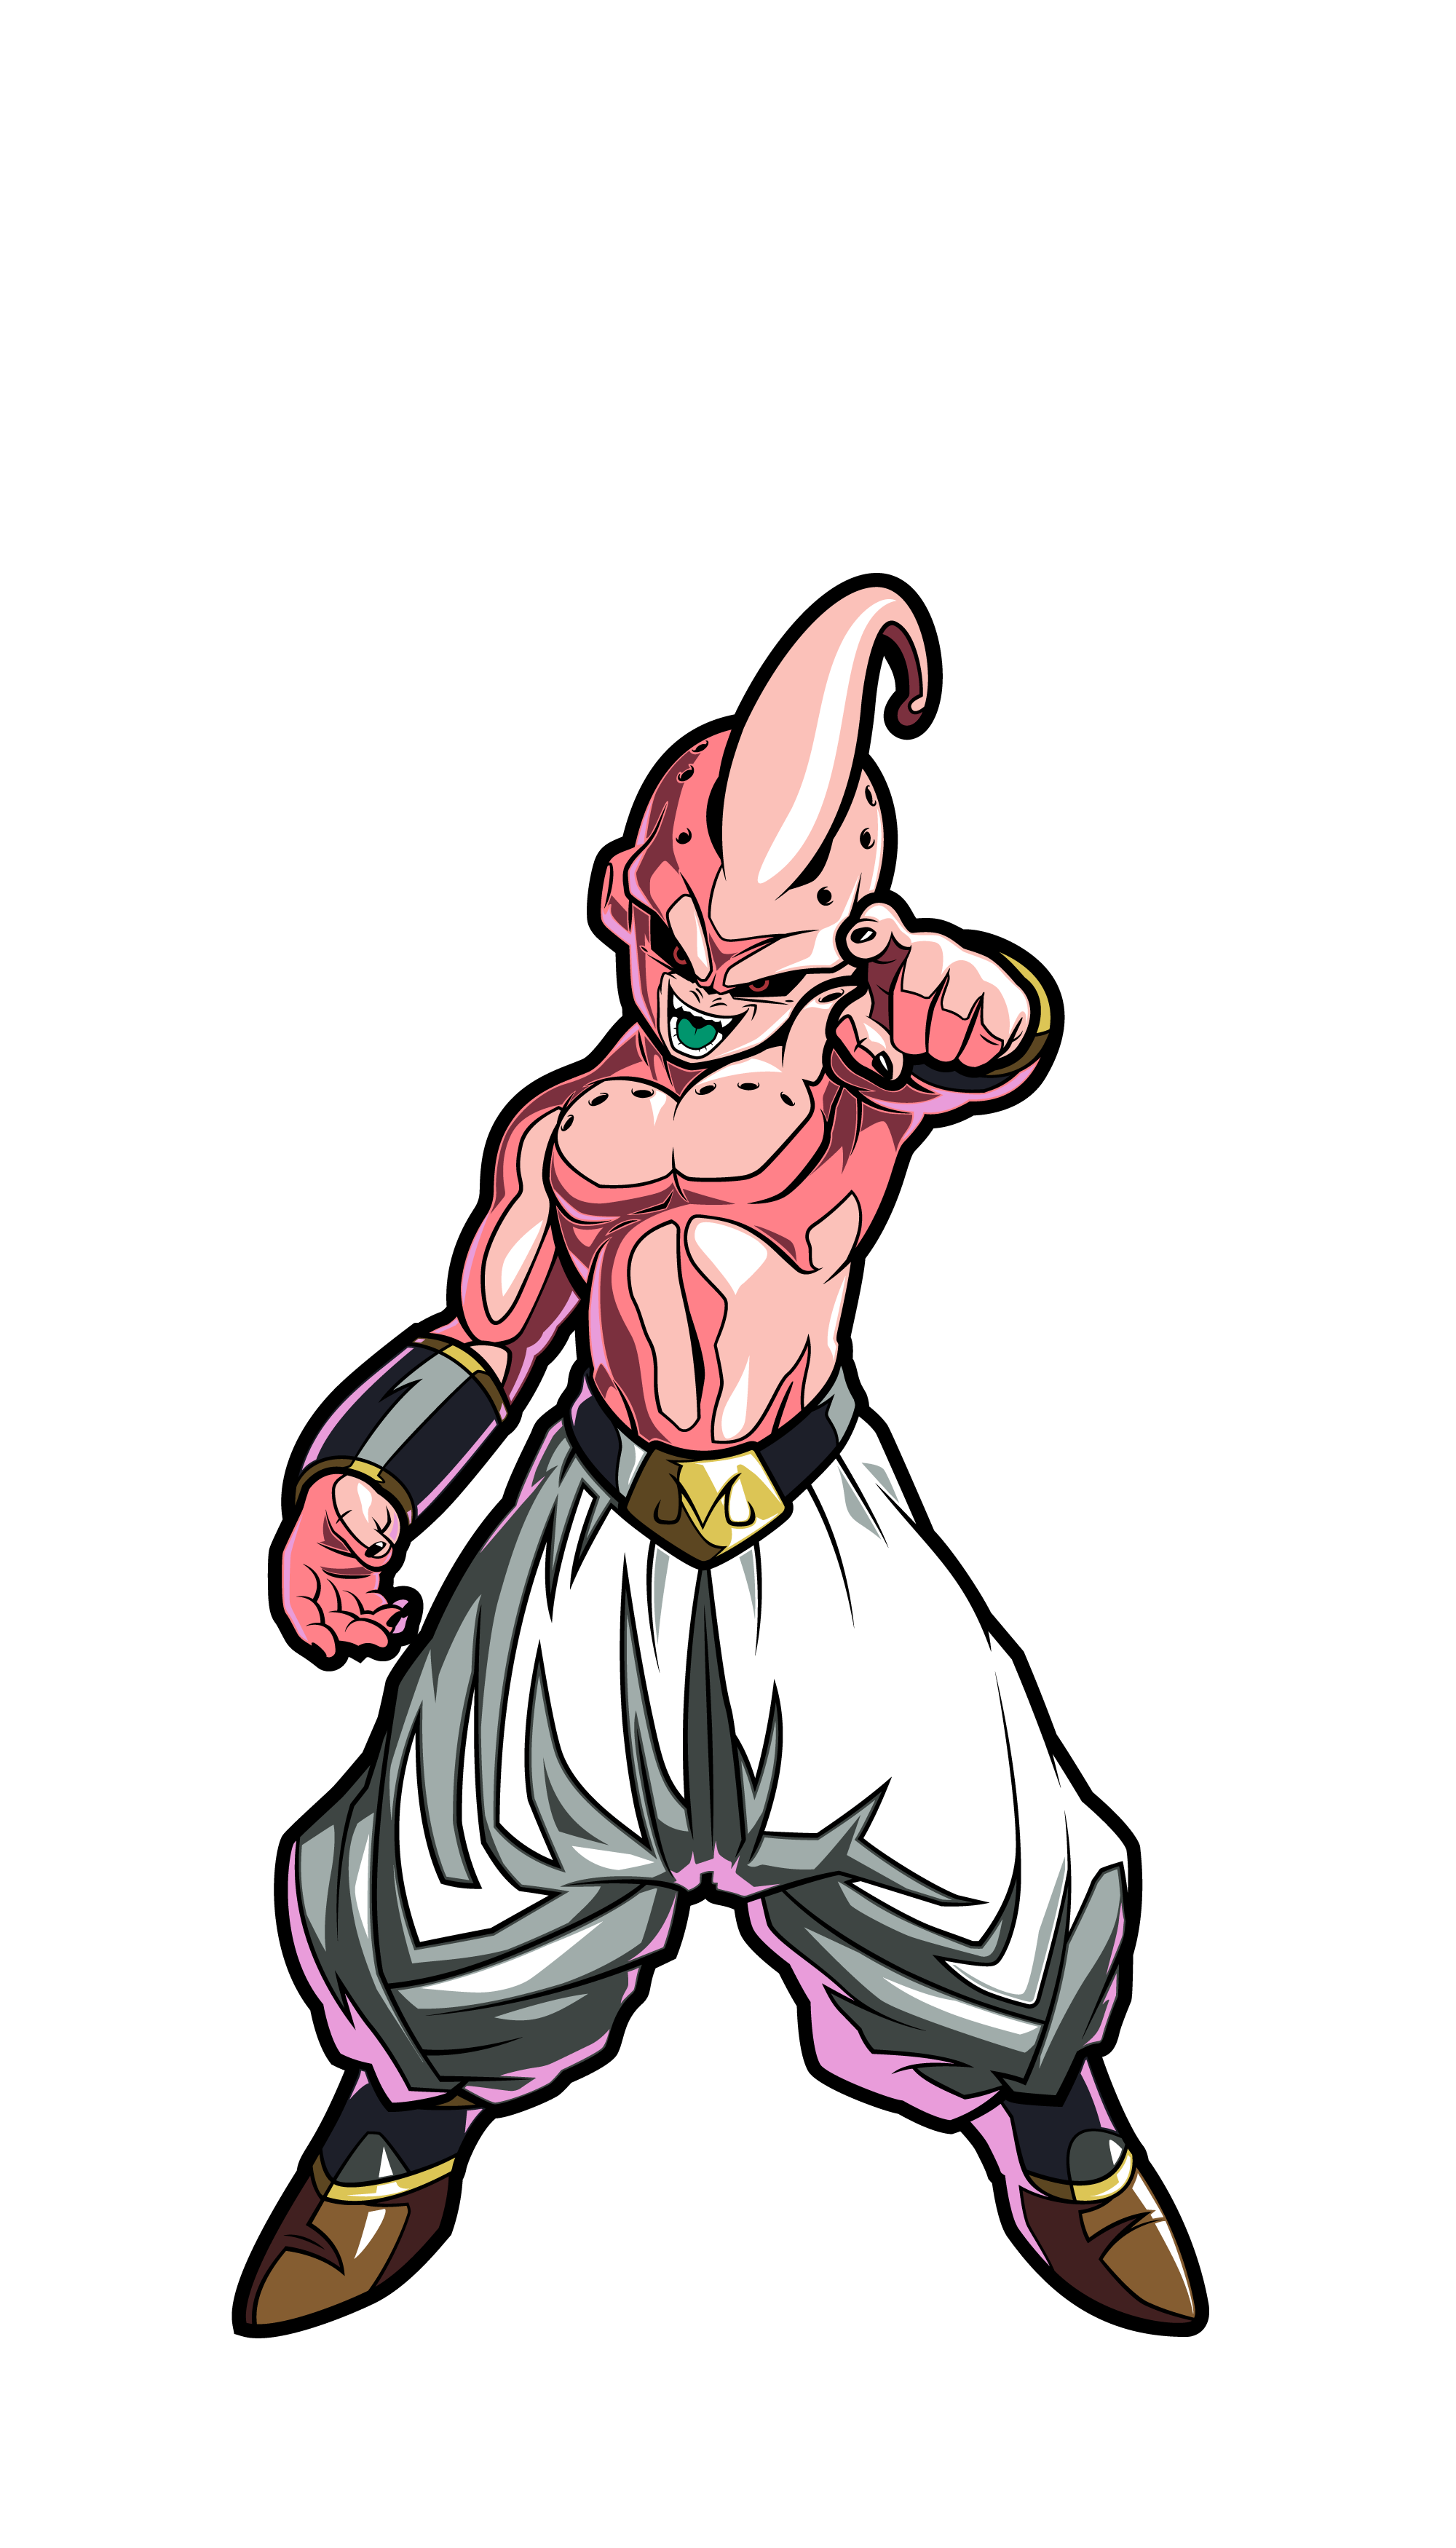 Kid Buu Png, png collections at sccpre.cat.